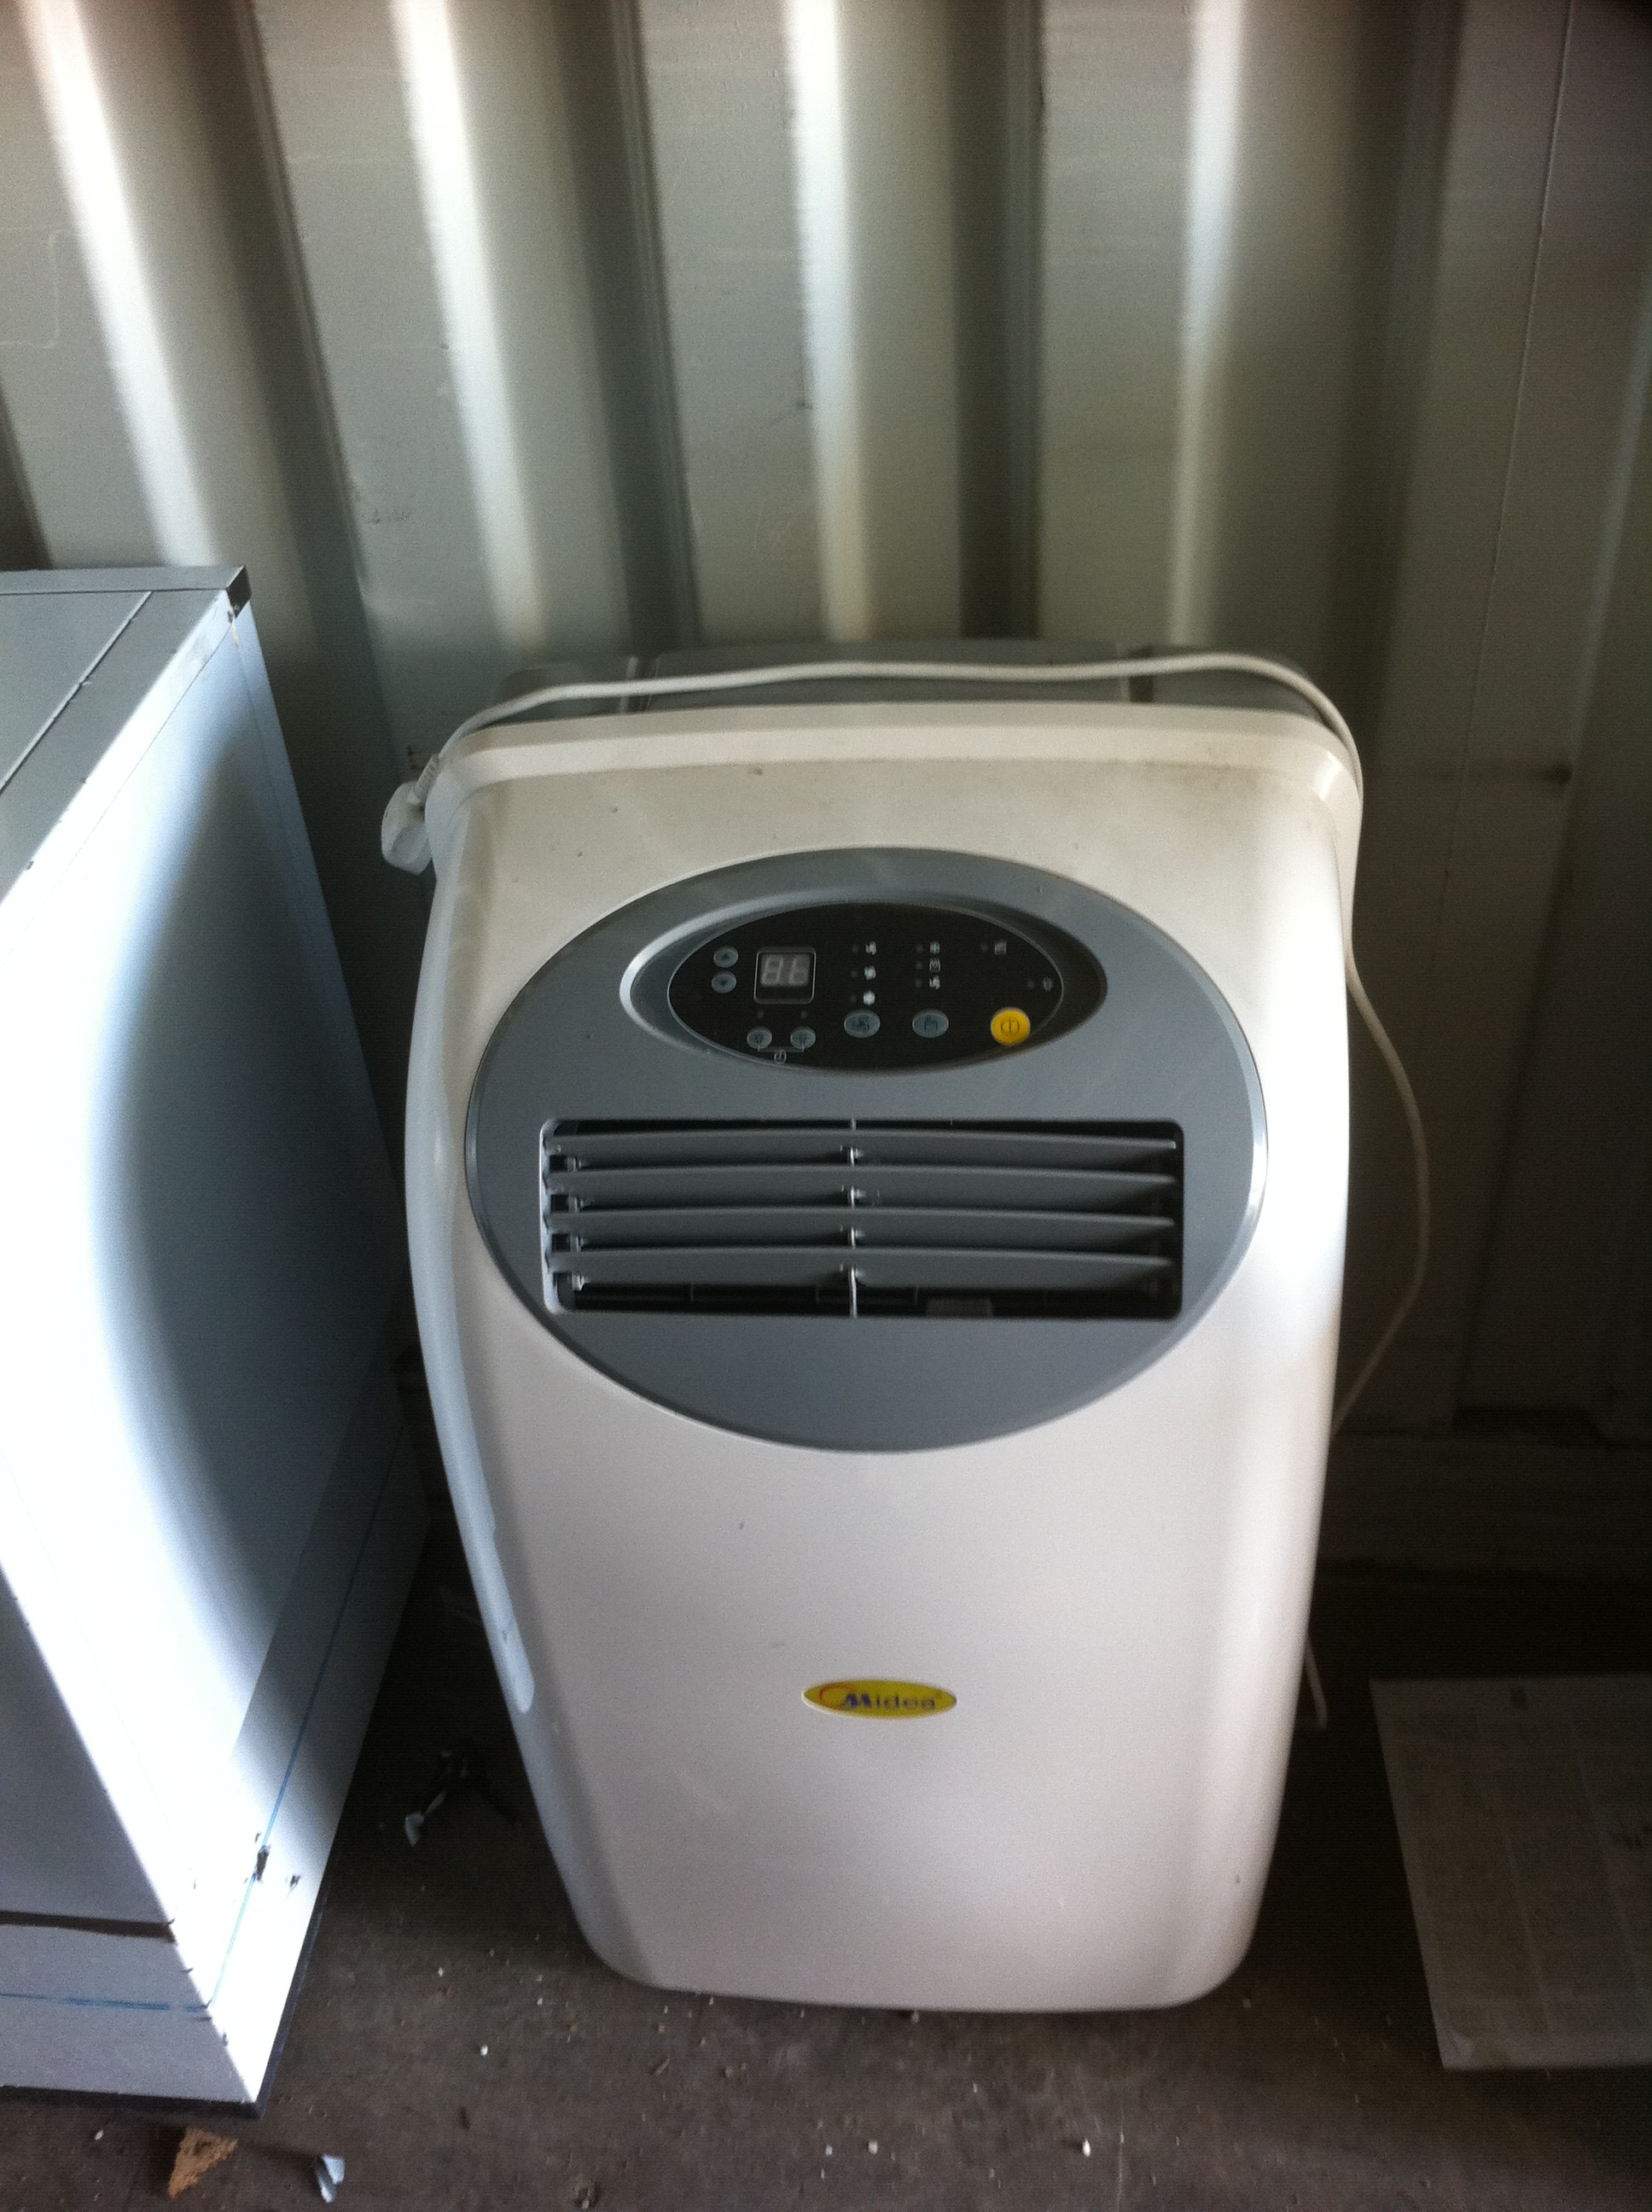 #4F687C Portable Air Conditioning Unit Cohan Refrigeration Air  Top of The Line 13654 Portable Refrigerated Air Conditioner picture with 1936x2592 px on helpvideos.info - Air Conditioners, Air Coolers and more